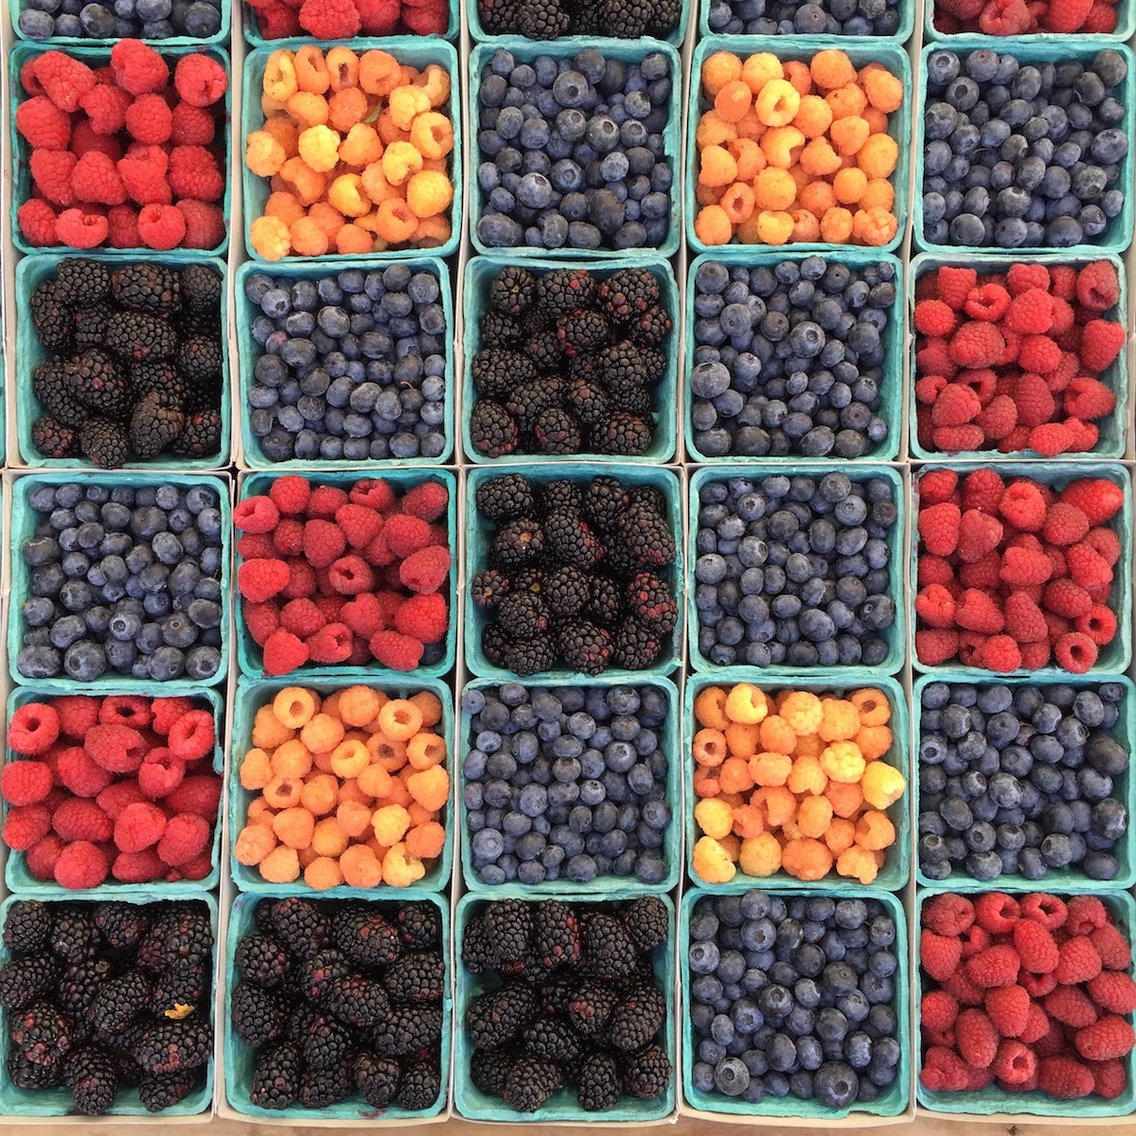 Berries for sale at a market in Los Angeles, California.